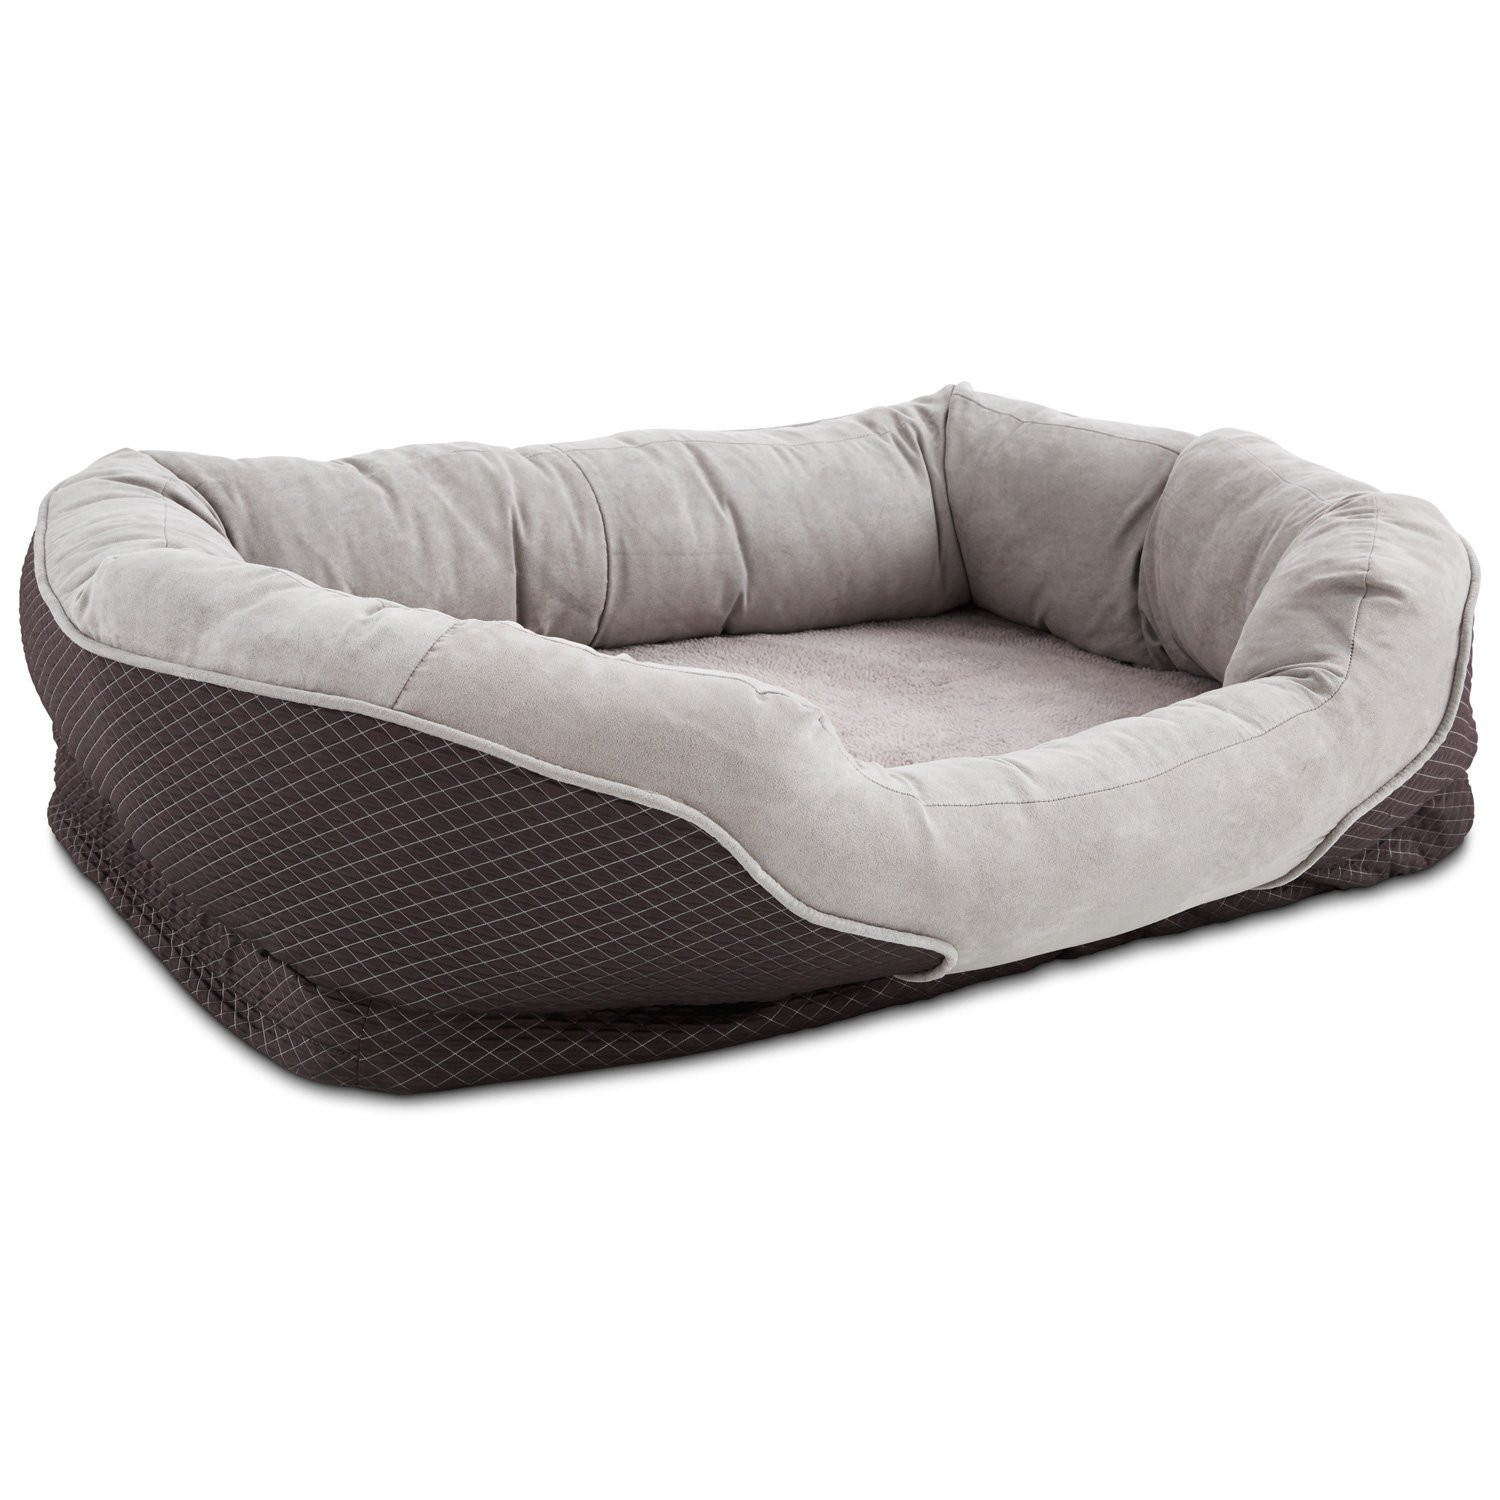 Orthopedic peaceful nester gray dog bed petco How to buy a bed